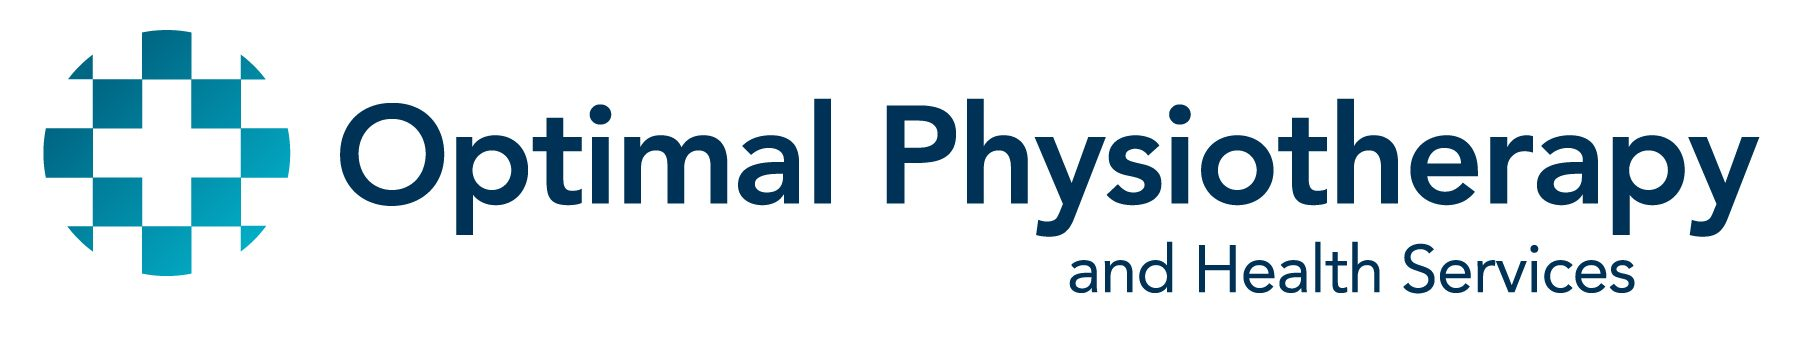 Optimal Physiotherapy and Health Services – London